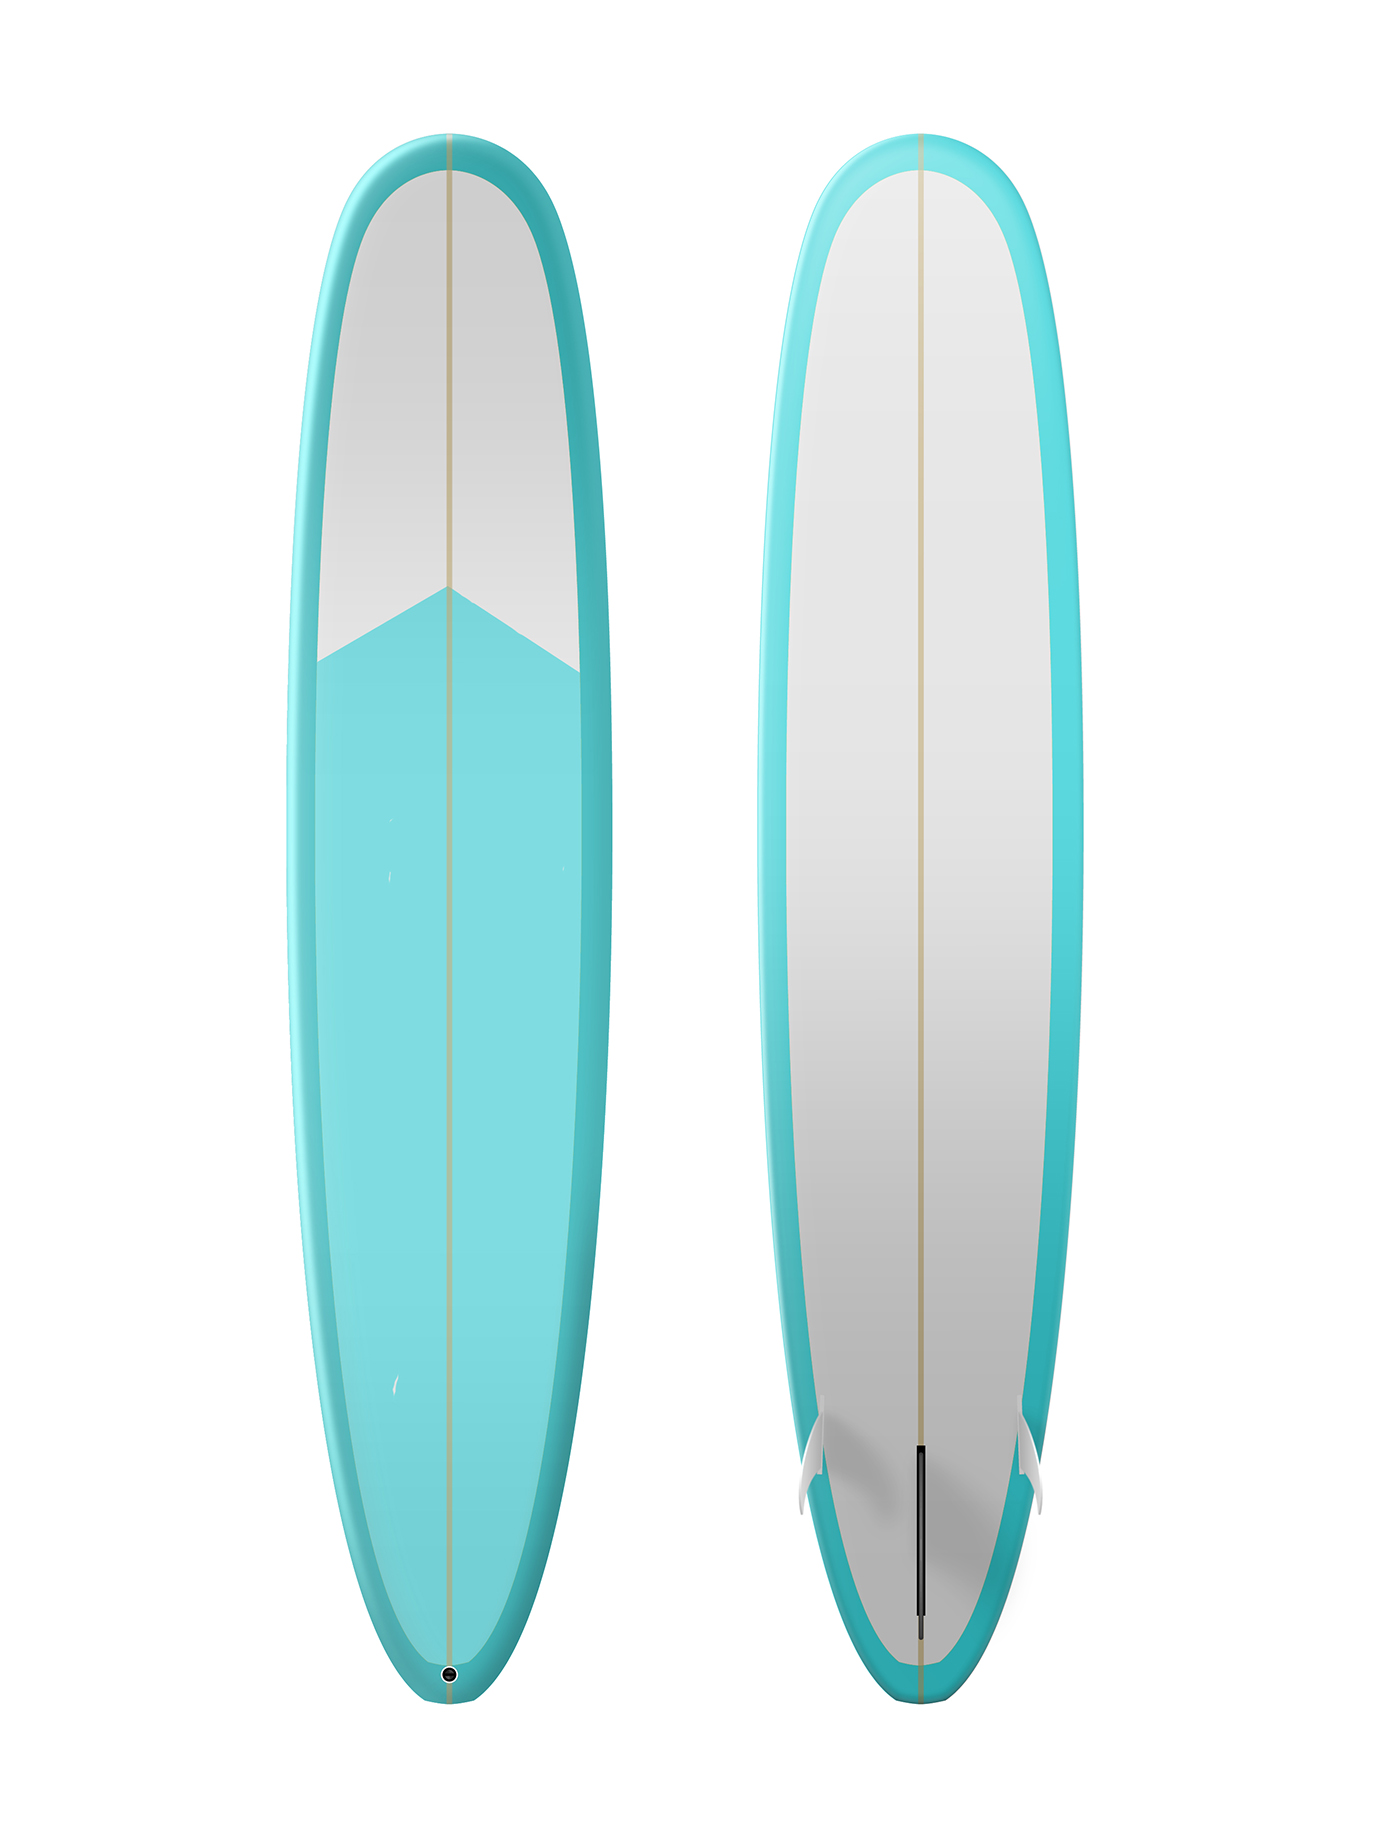 Bright blue and white surfboard